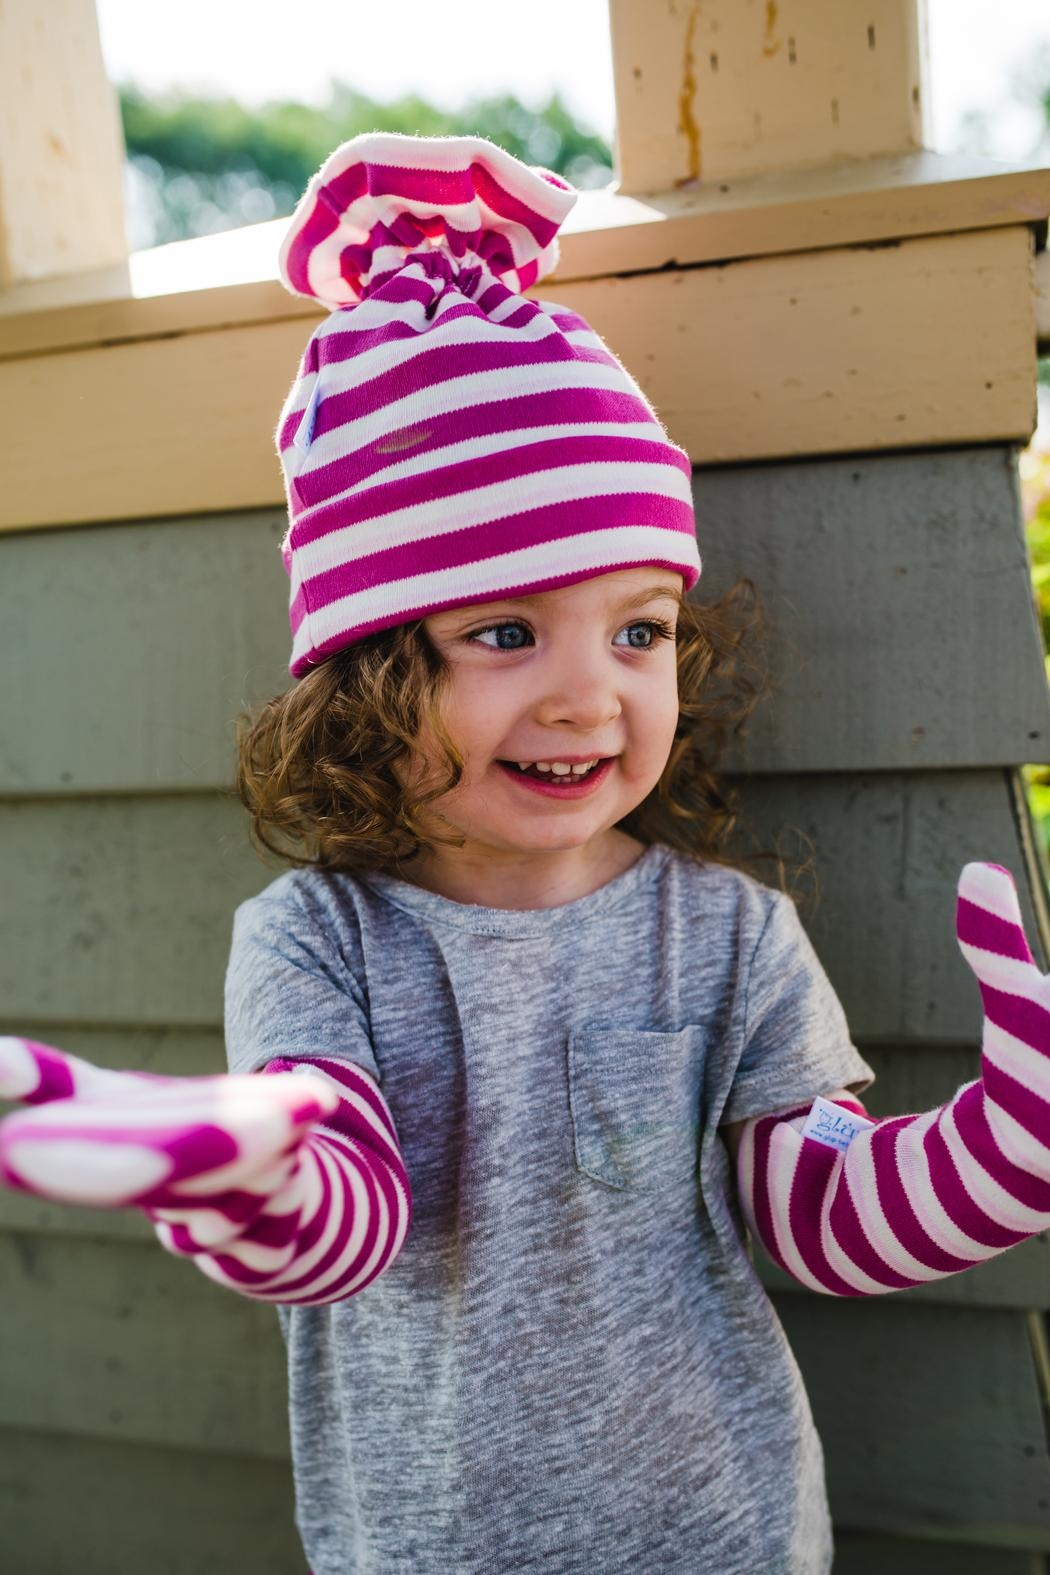 Glup 3 In 1 Child's Hat - Main Image